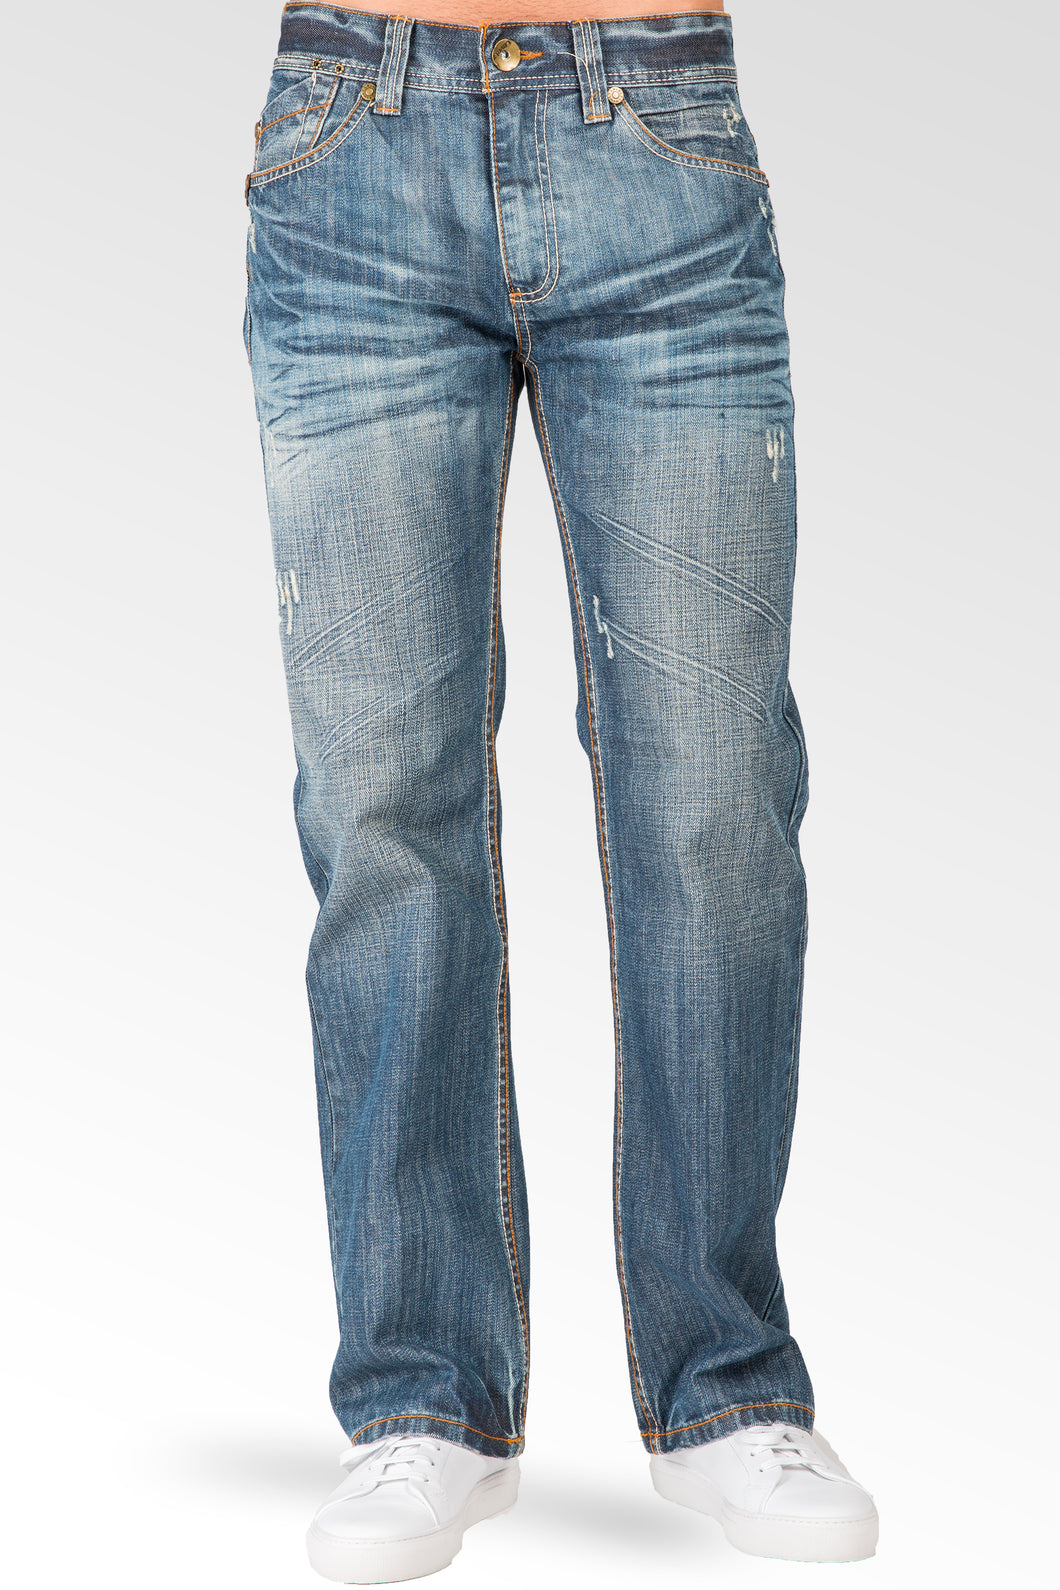 Midrise Relax Bootcut Premium Denim Signature 5-Pocket Jeans Whiskering Scratching